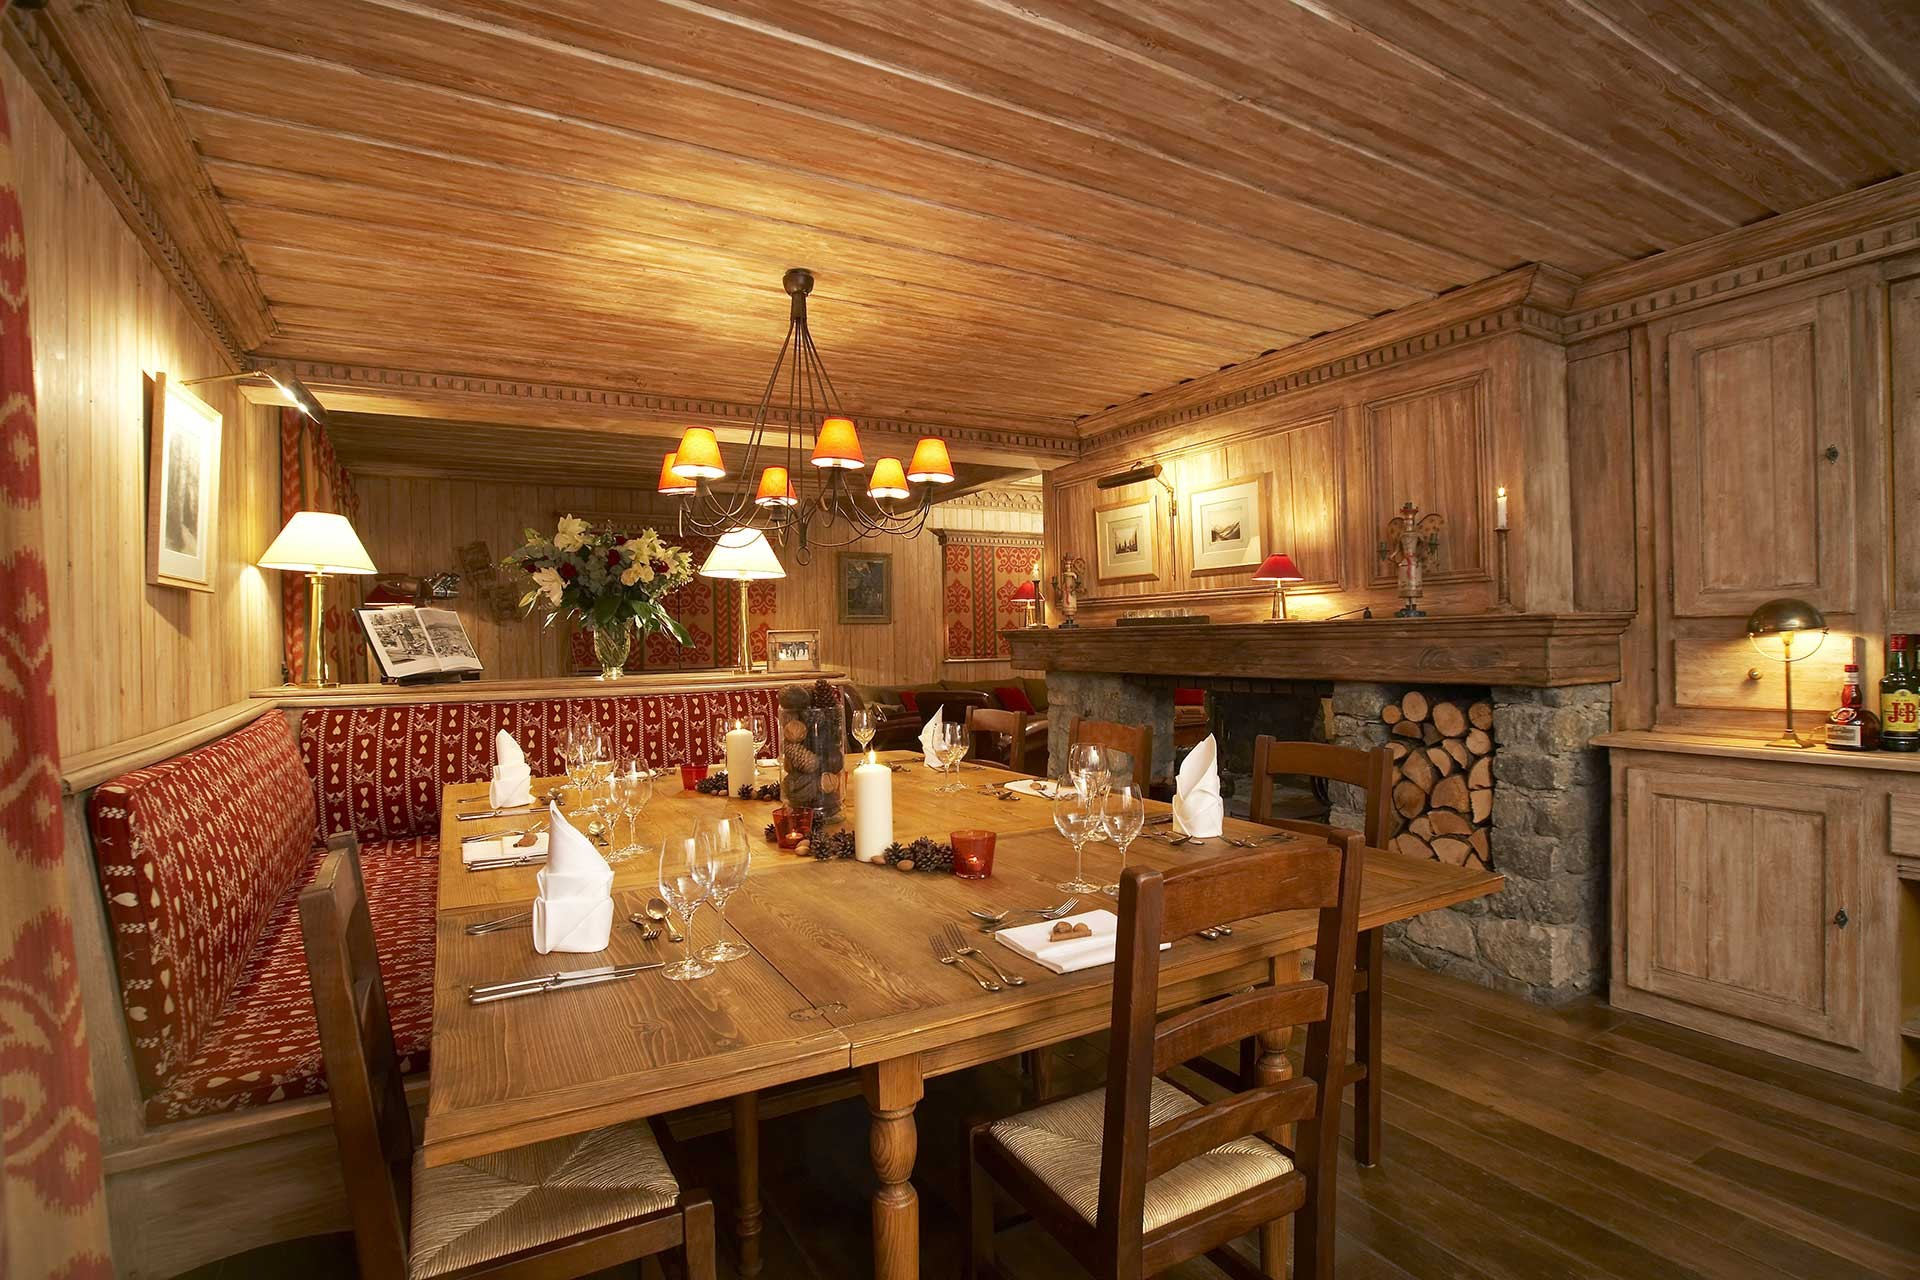 Méribel Location Chalet Luxe Ulomite Salle A Manger